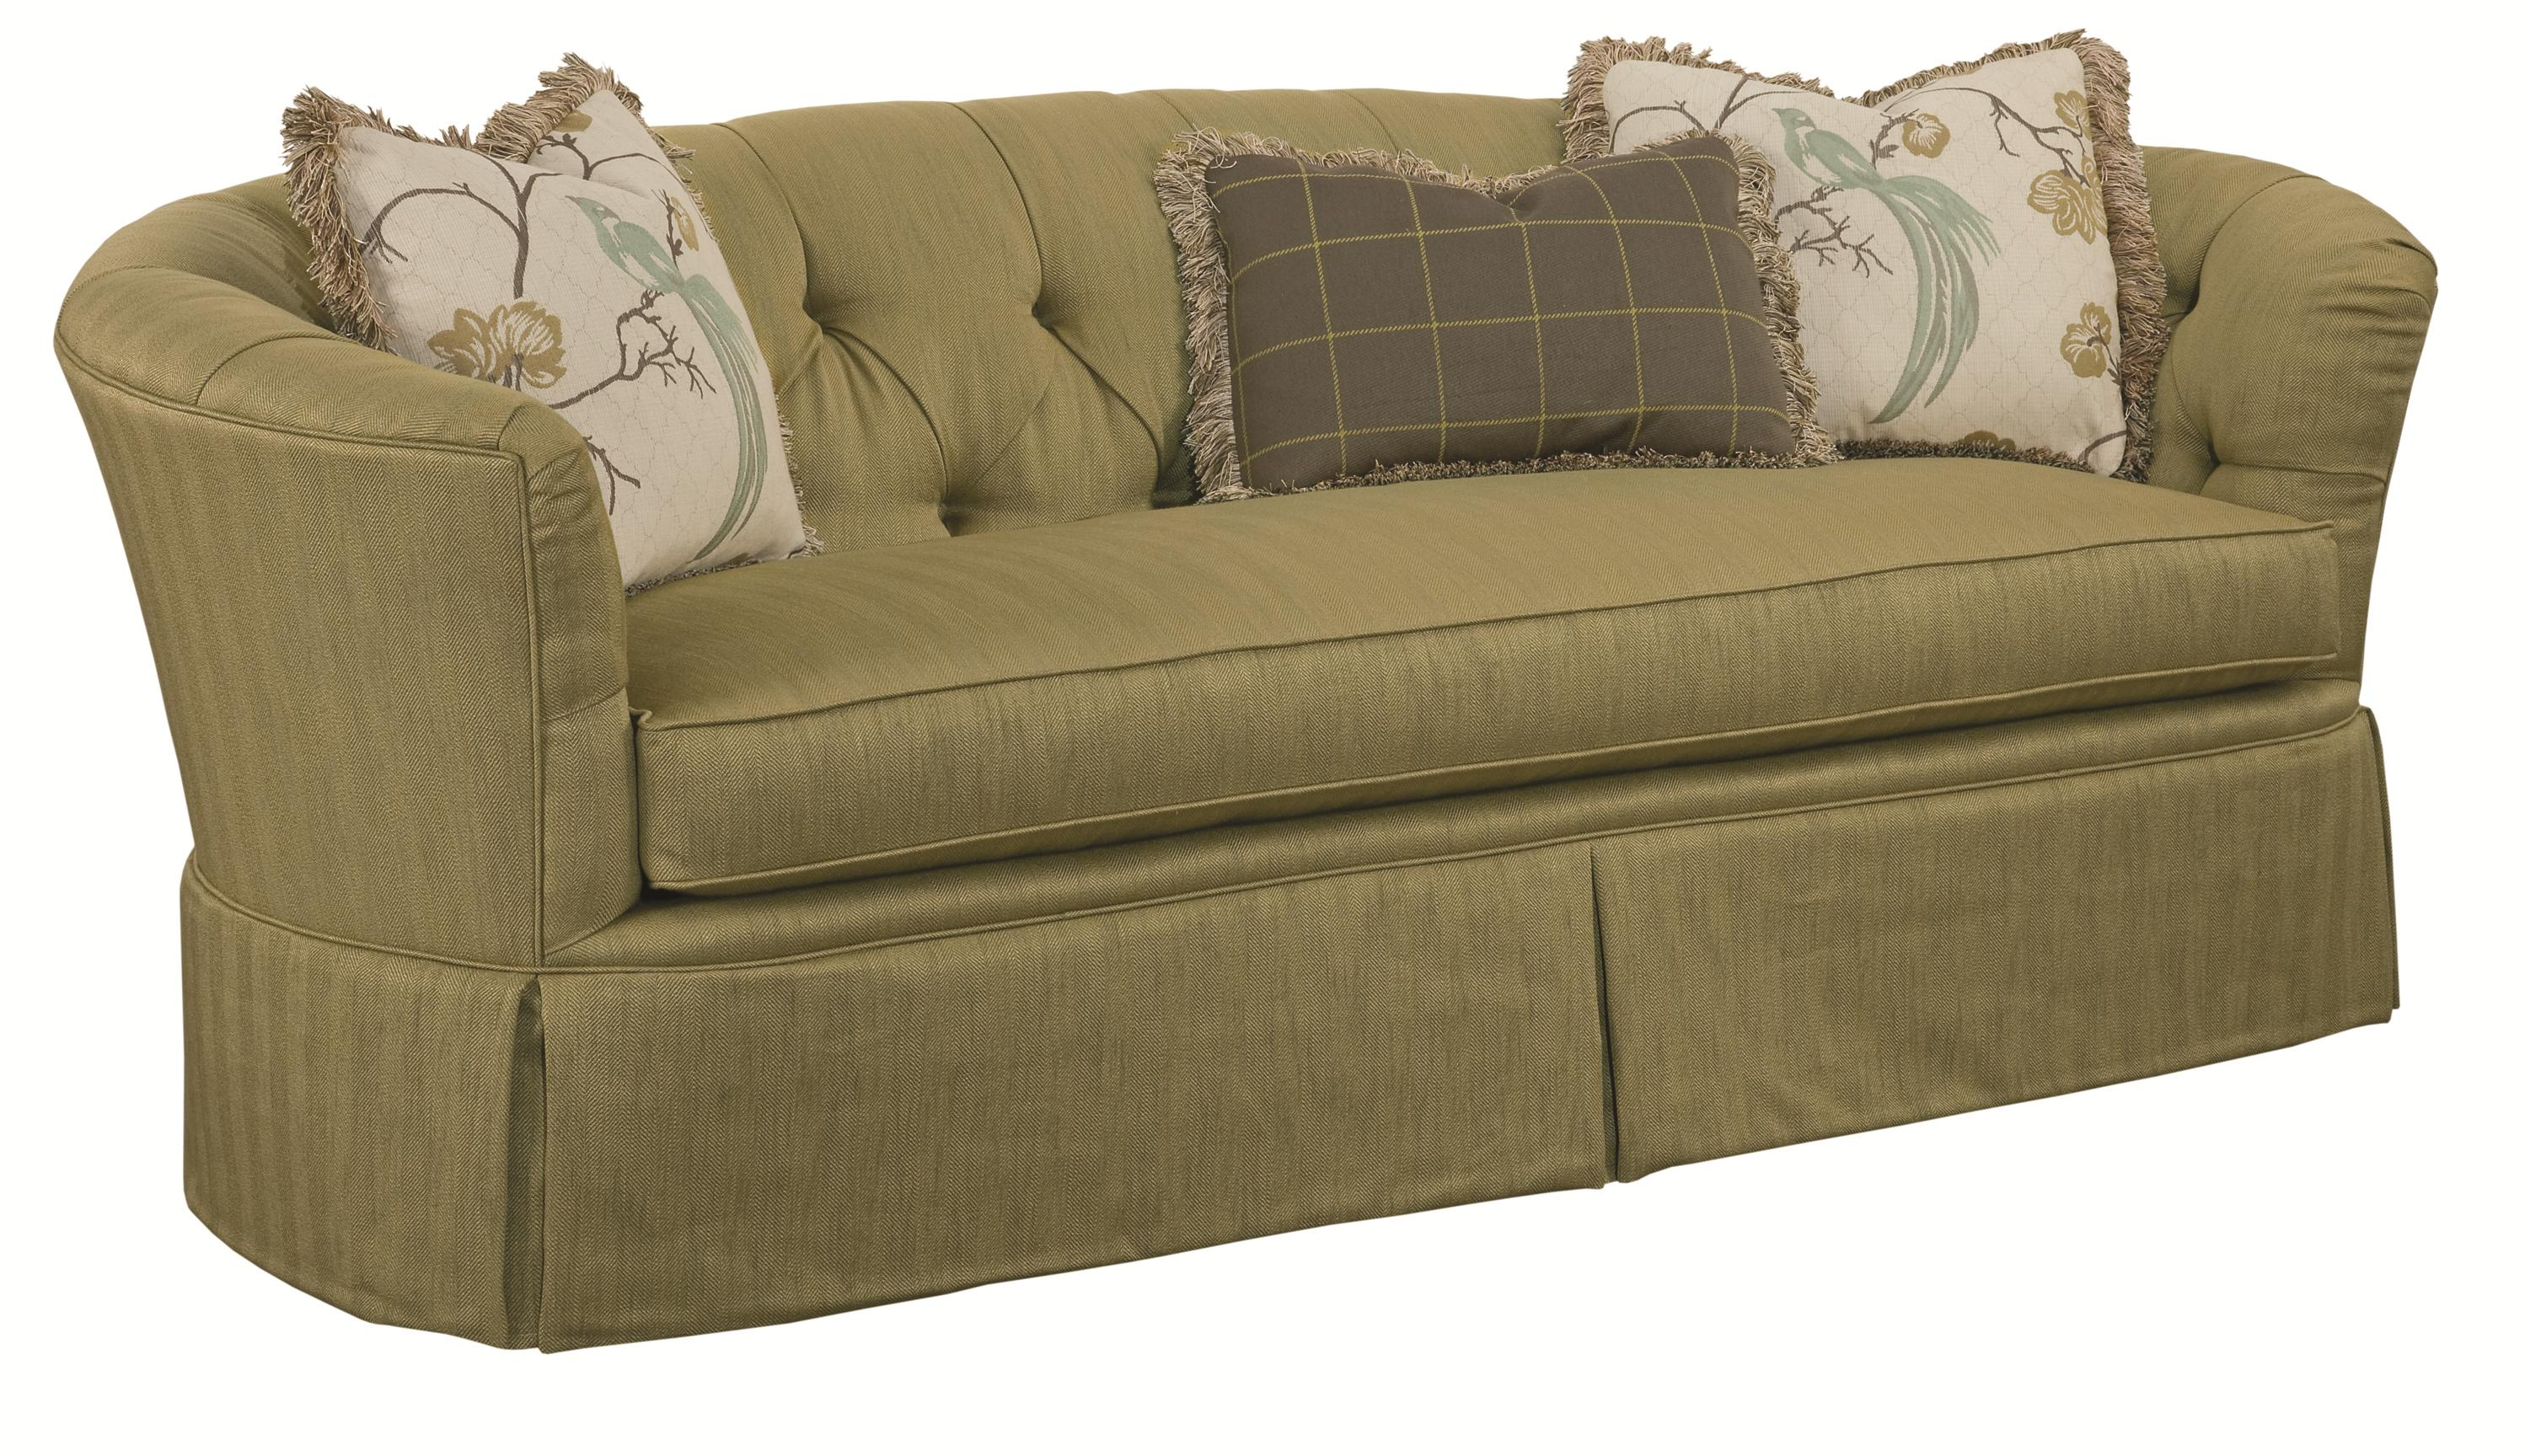 kincaid sofas reviews 3 seat recliner sofa covers furniture elm park button tufted howell